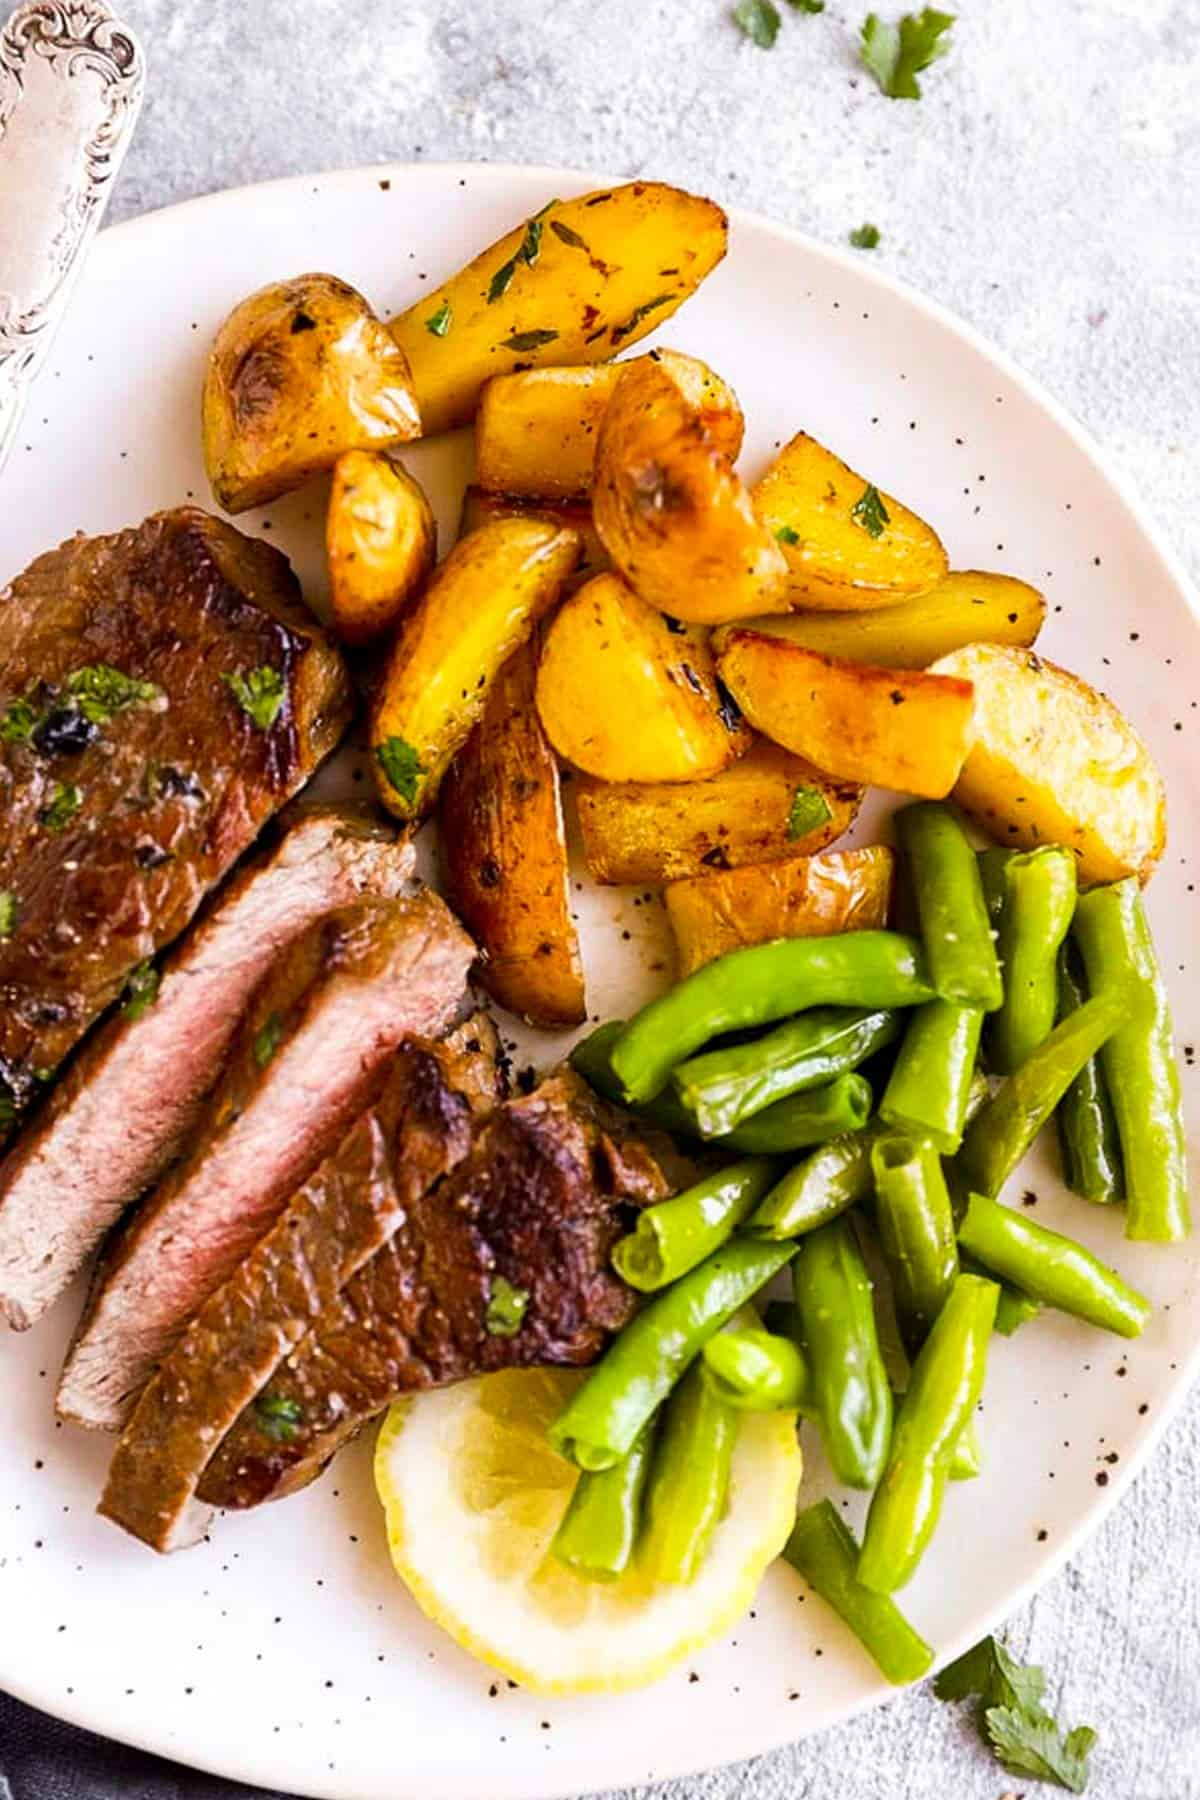 plate with sliced steak, potatoes and green beans